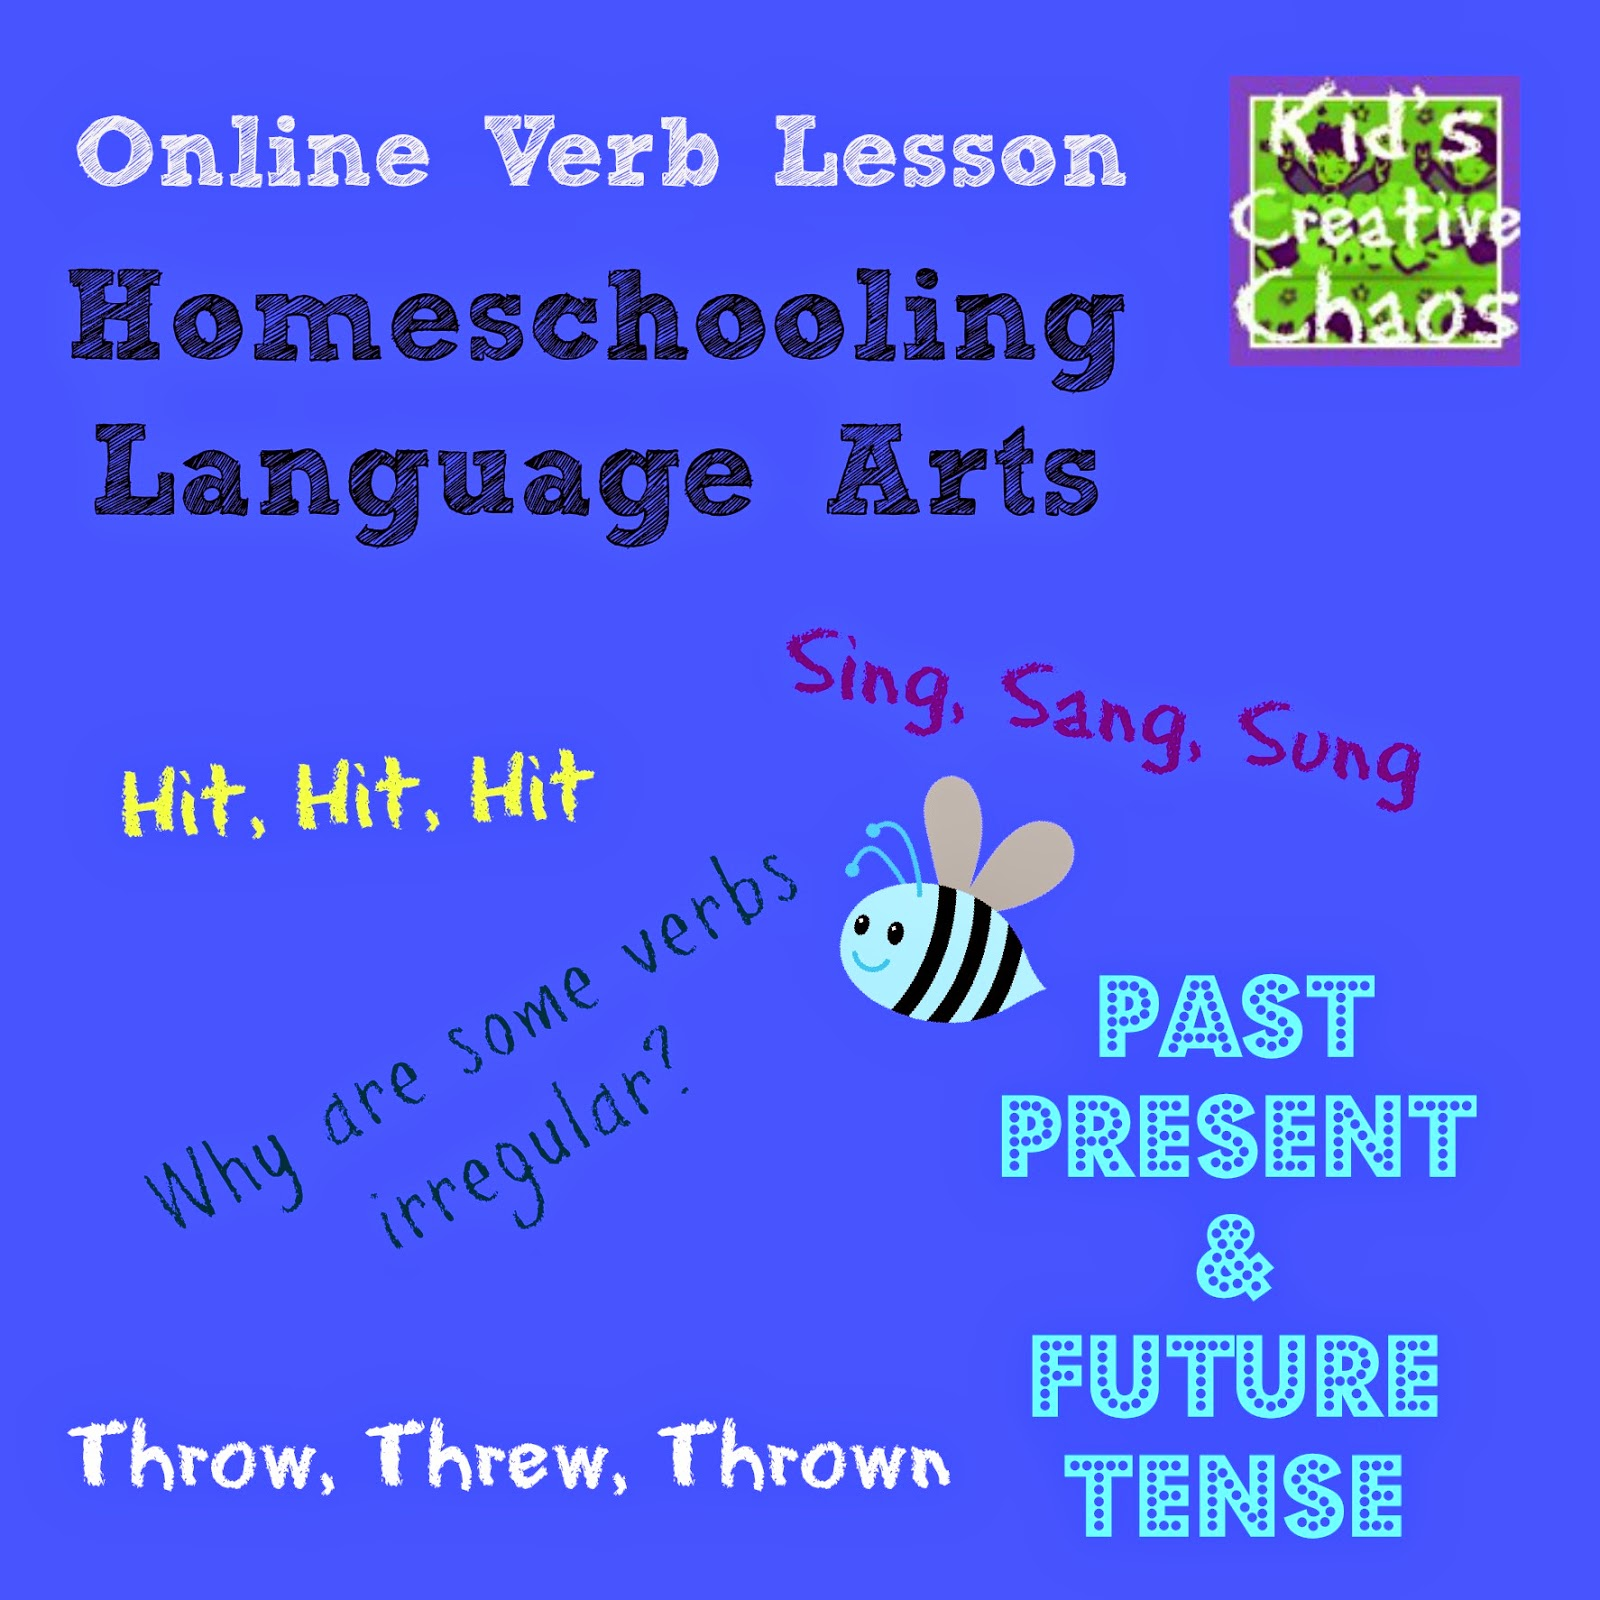 English Verb Conjugation Practice Lesson for Homeschool